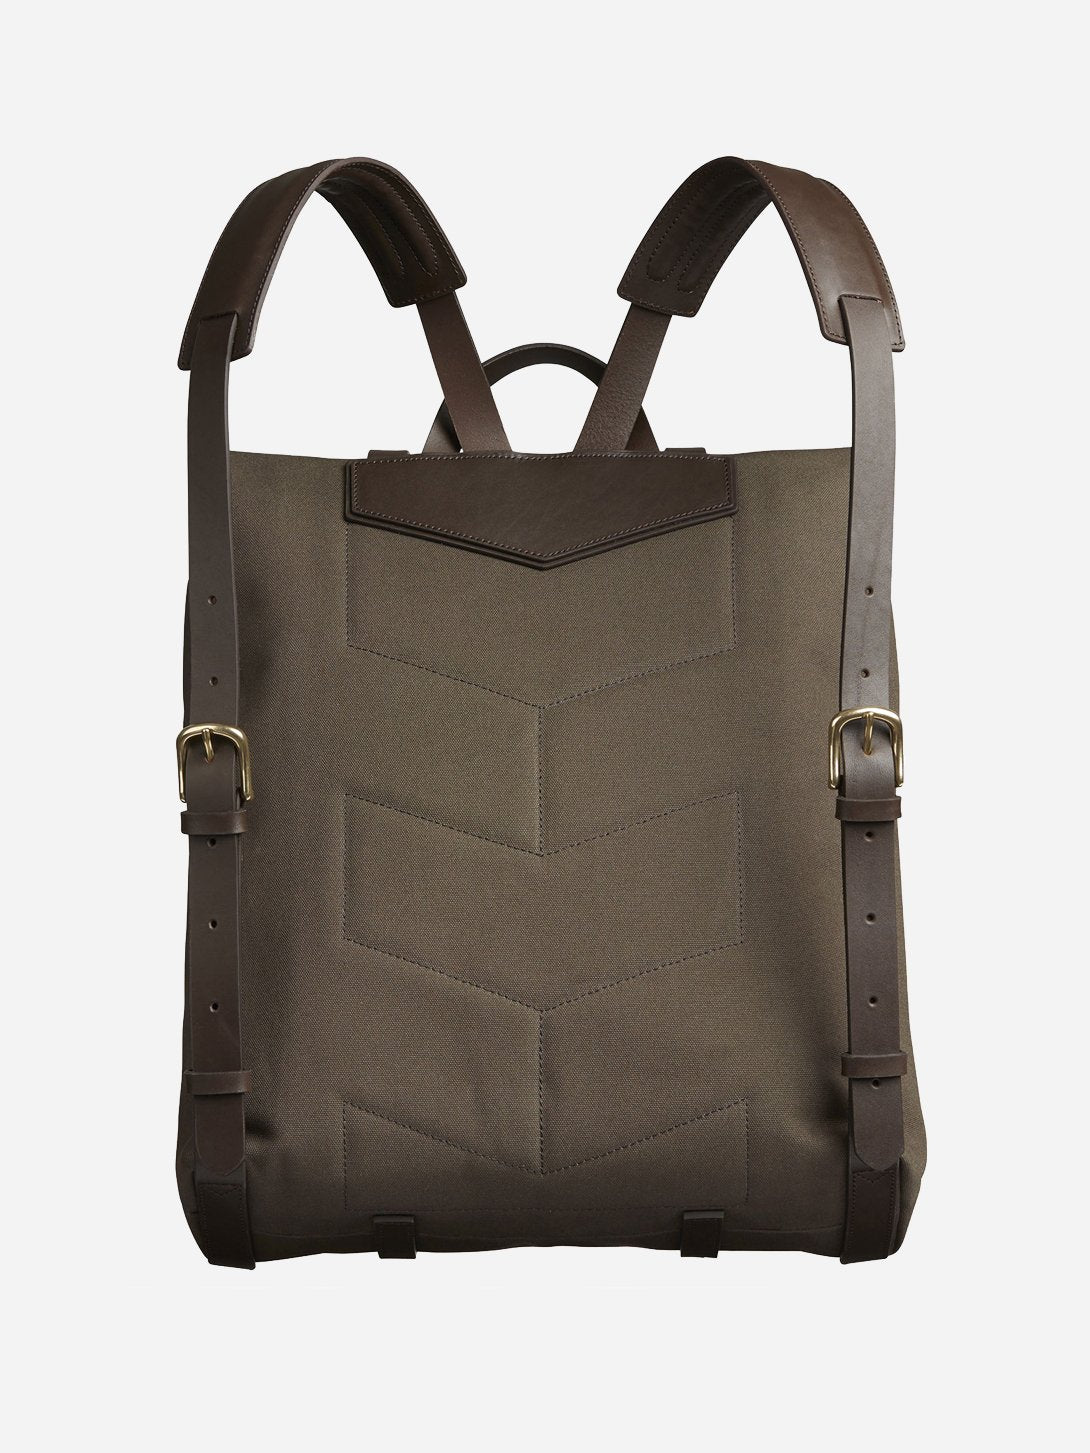 ARMY/DK.BROWN men and women unisex roll top blue canvas and brown leather backpack m/s backpack mismo